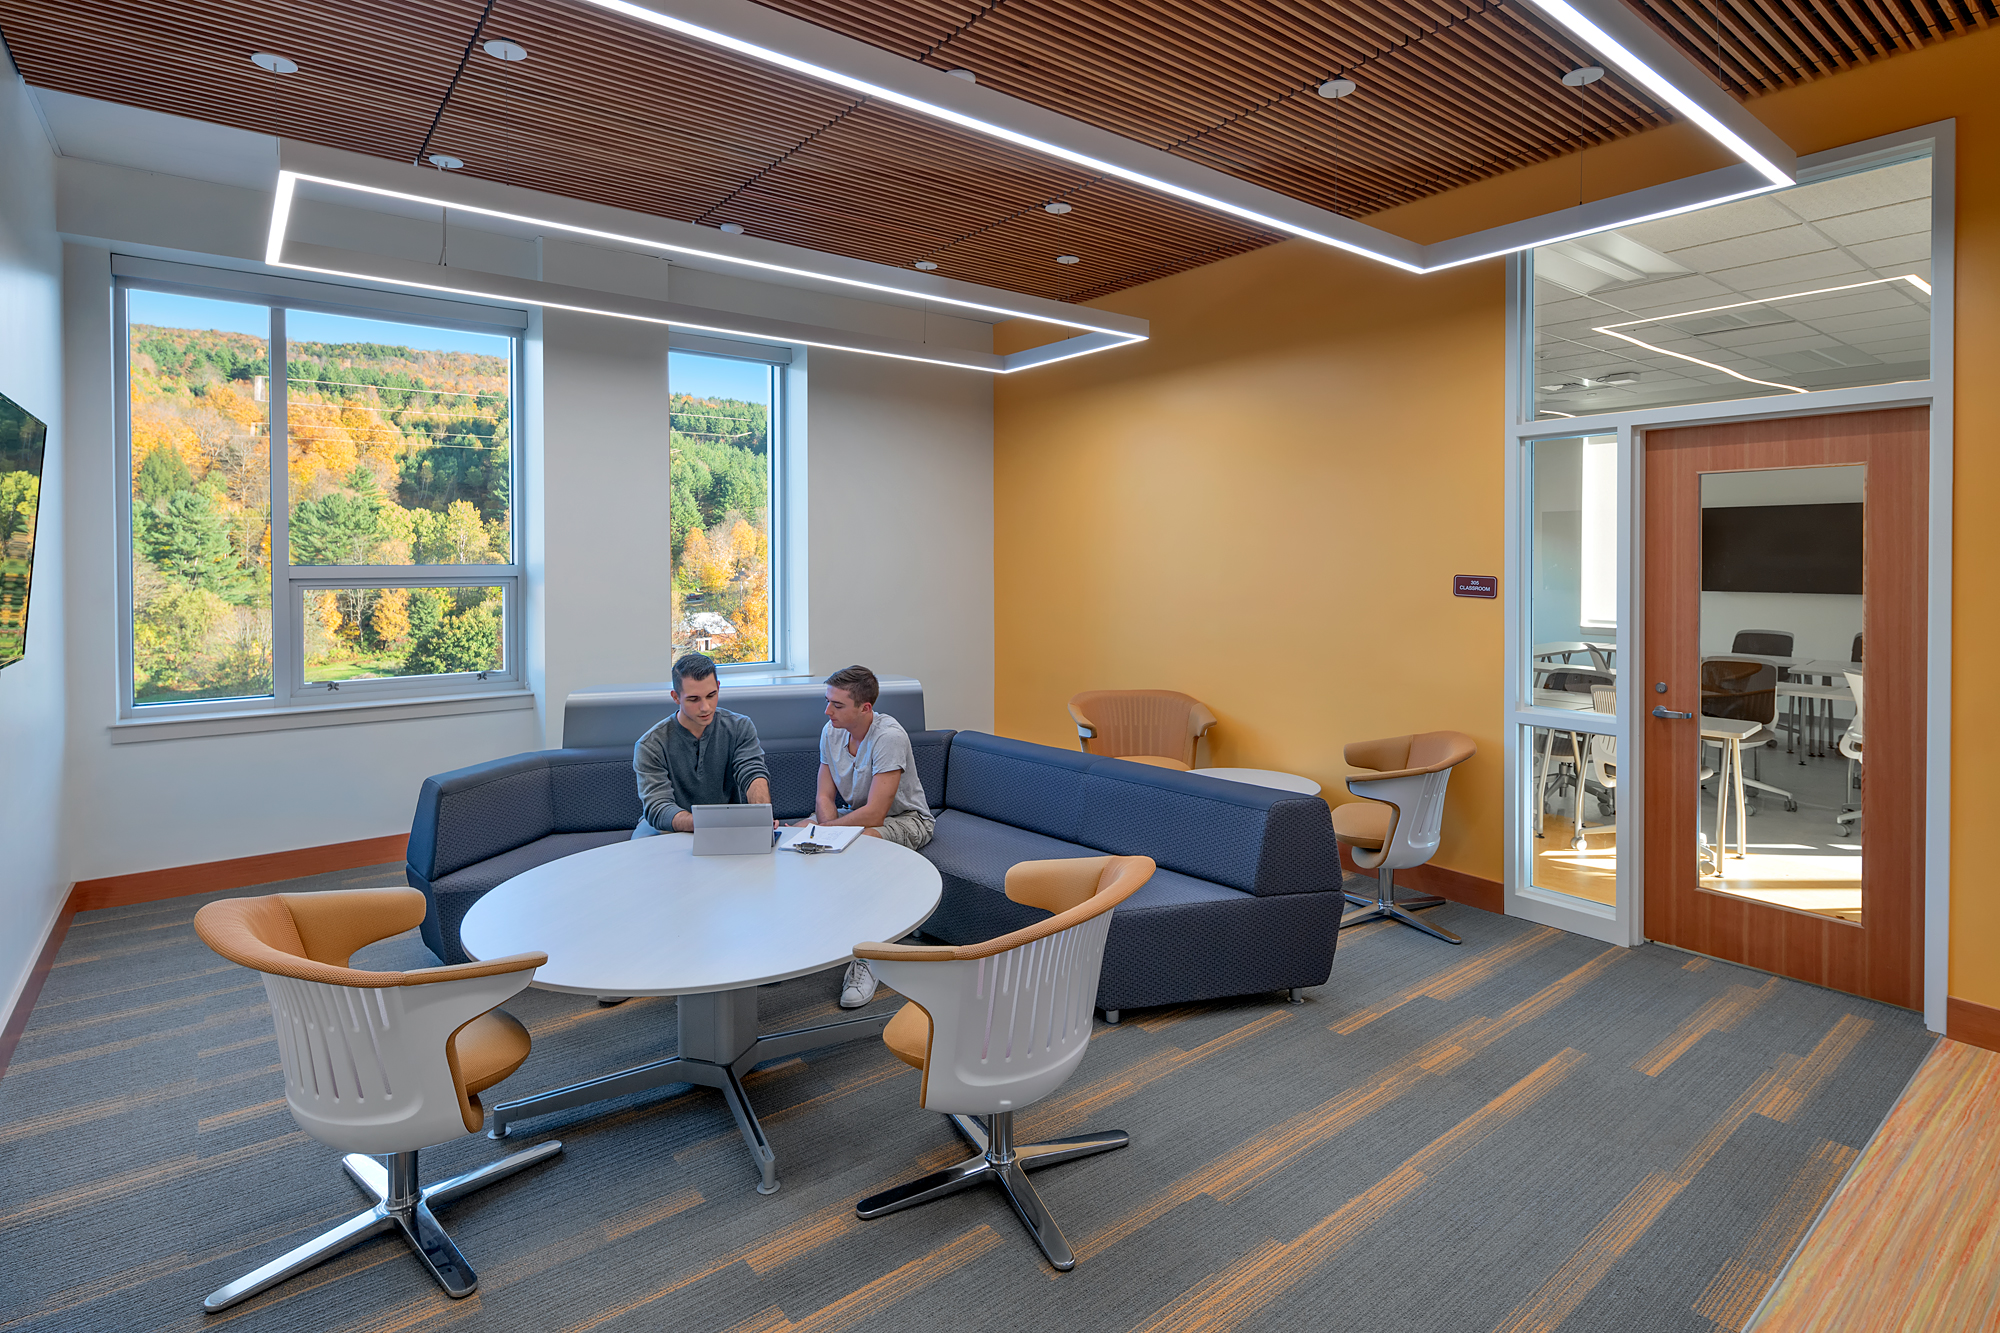 Norwich University Mack Hall - Collaboration Lounge